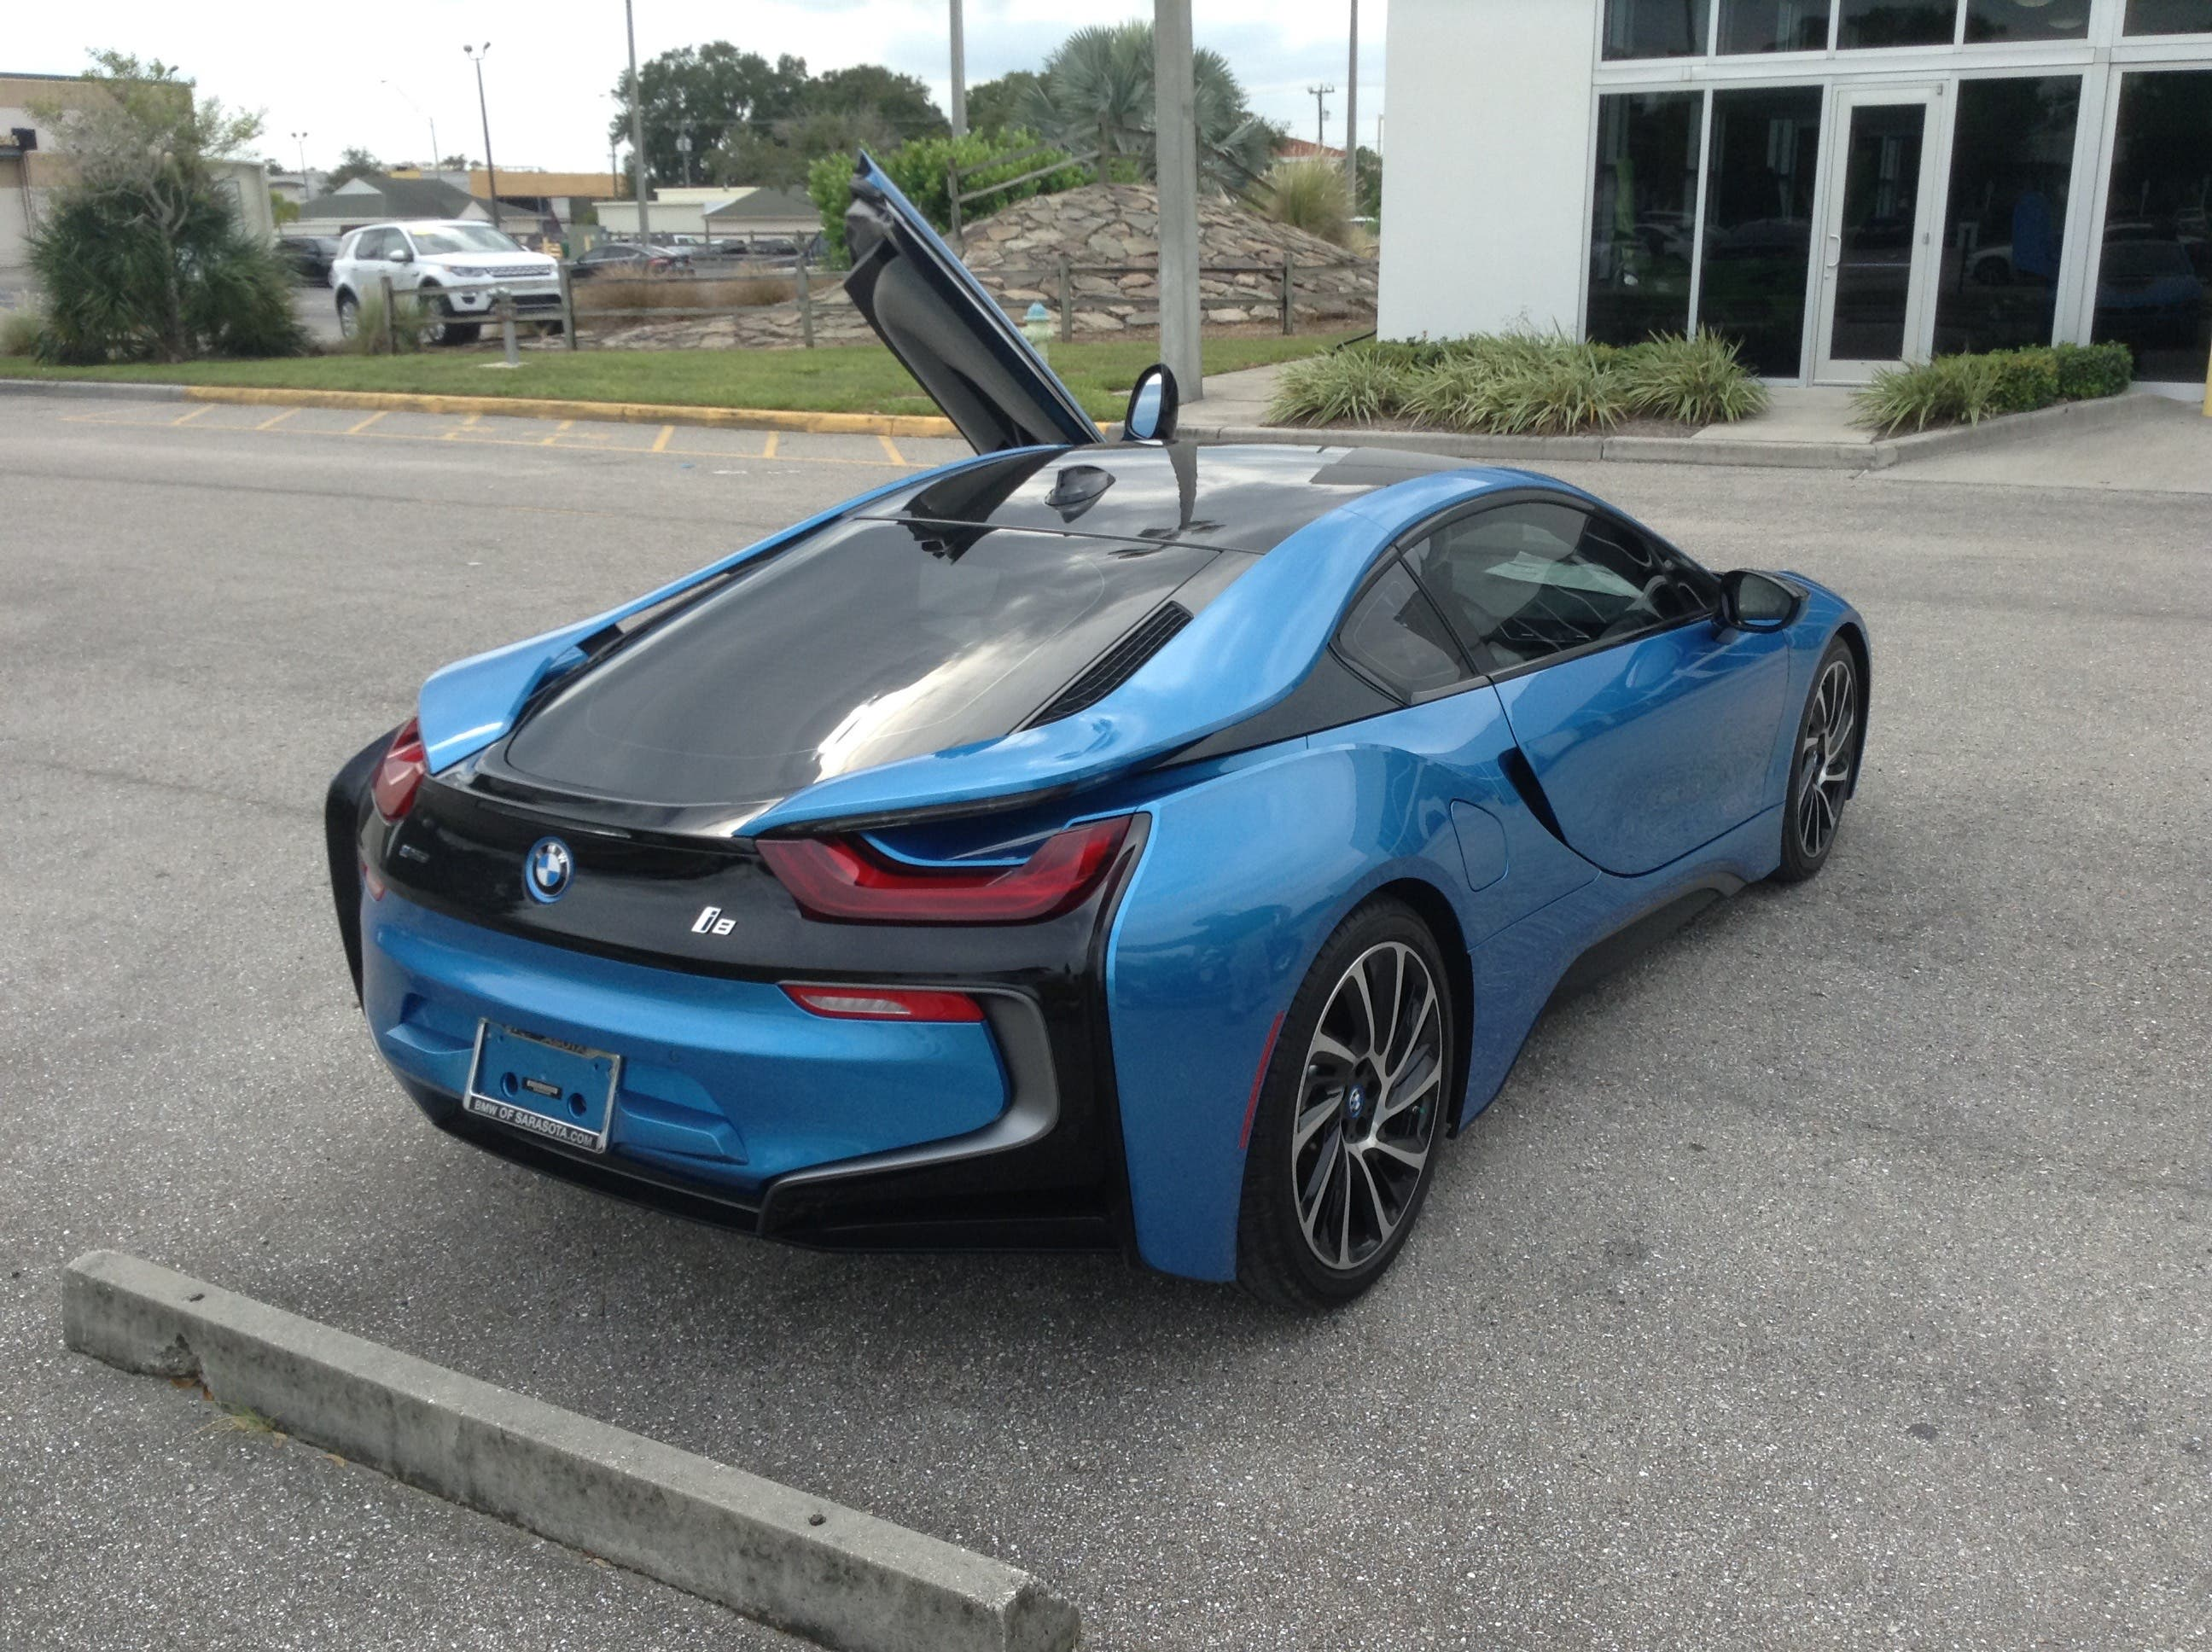 Despite The Improvement From Pure Electric Drive However I8 Would Still Basically Seat Two People And Car Was Not Design To Be Fully